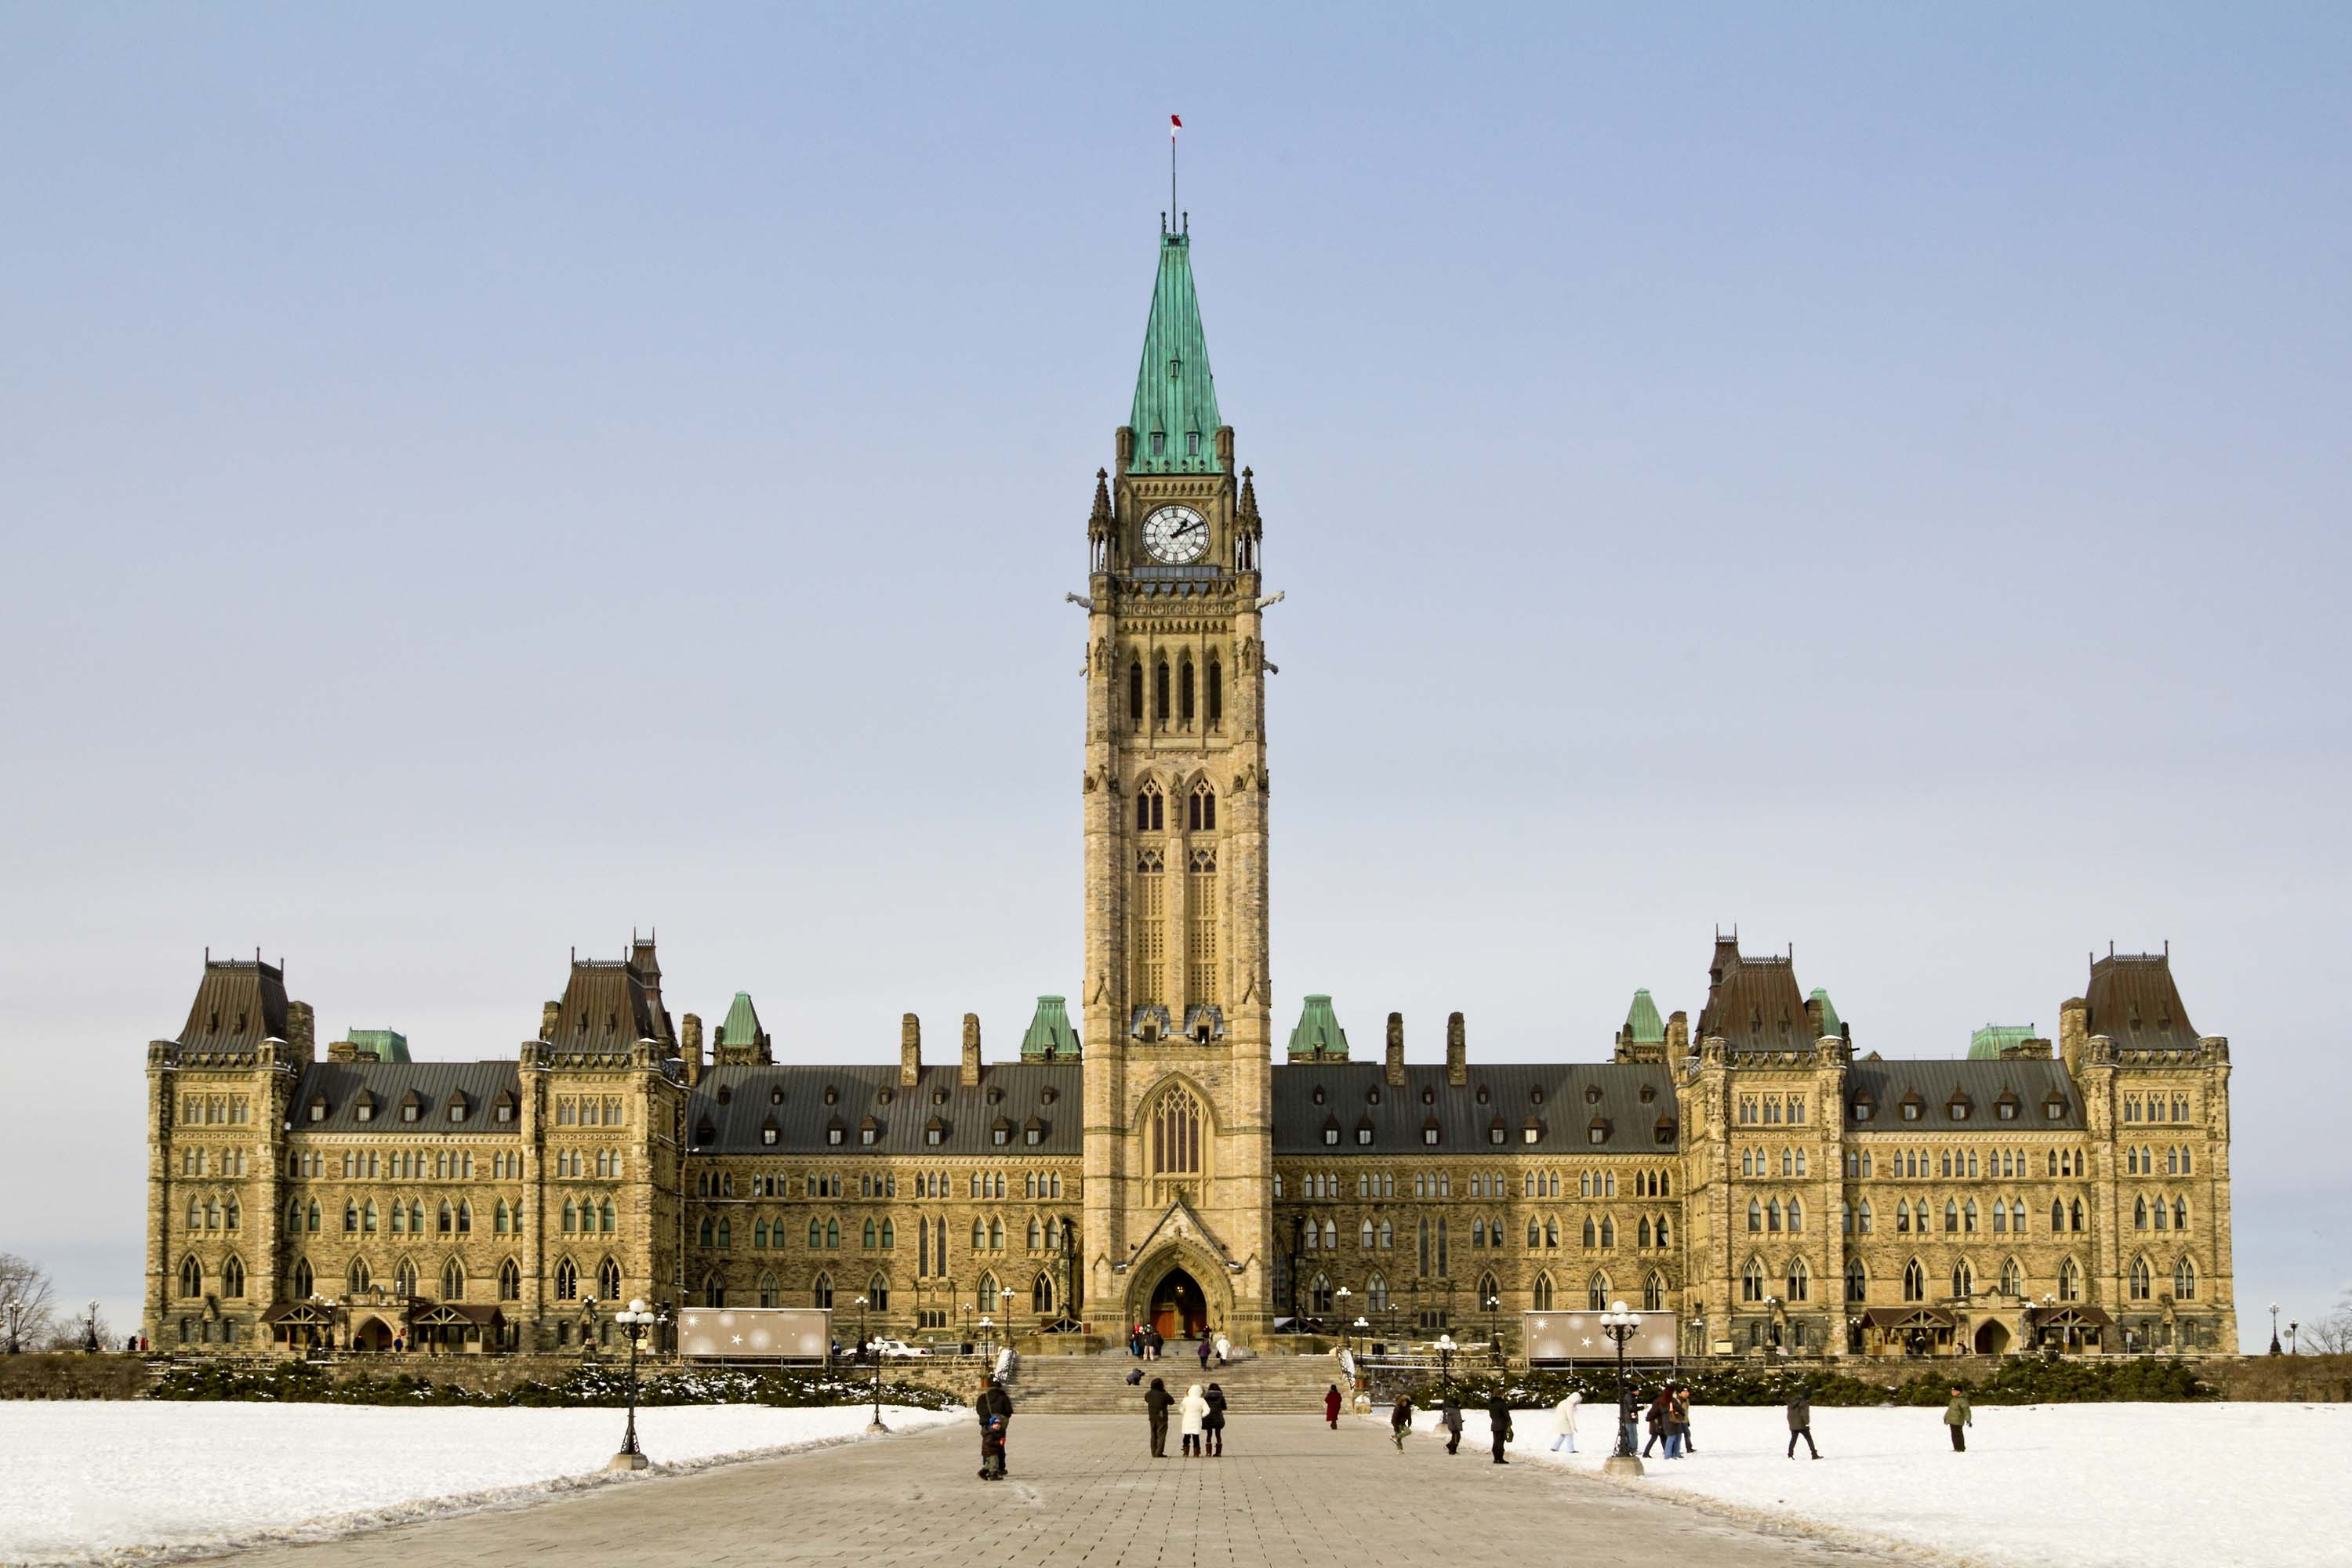 Popular Activities And Attractions In Ottawa Canada